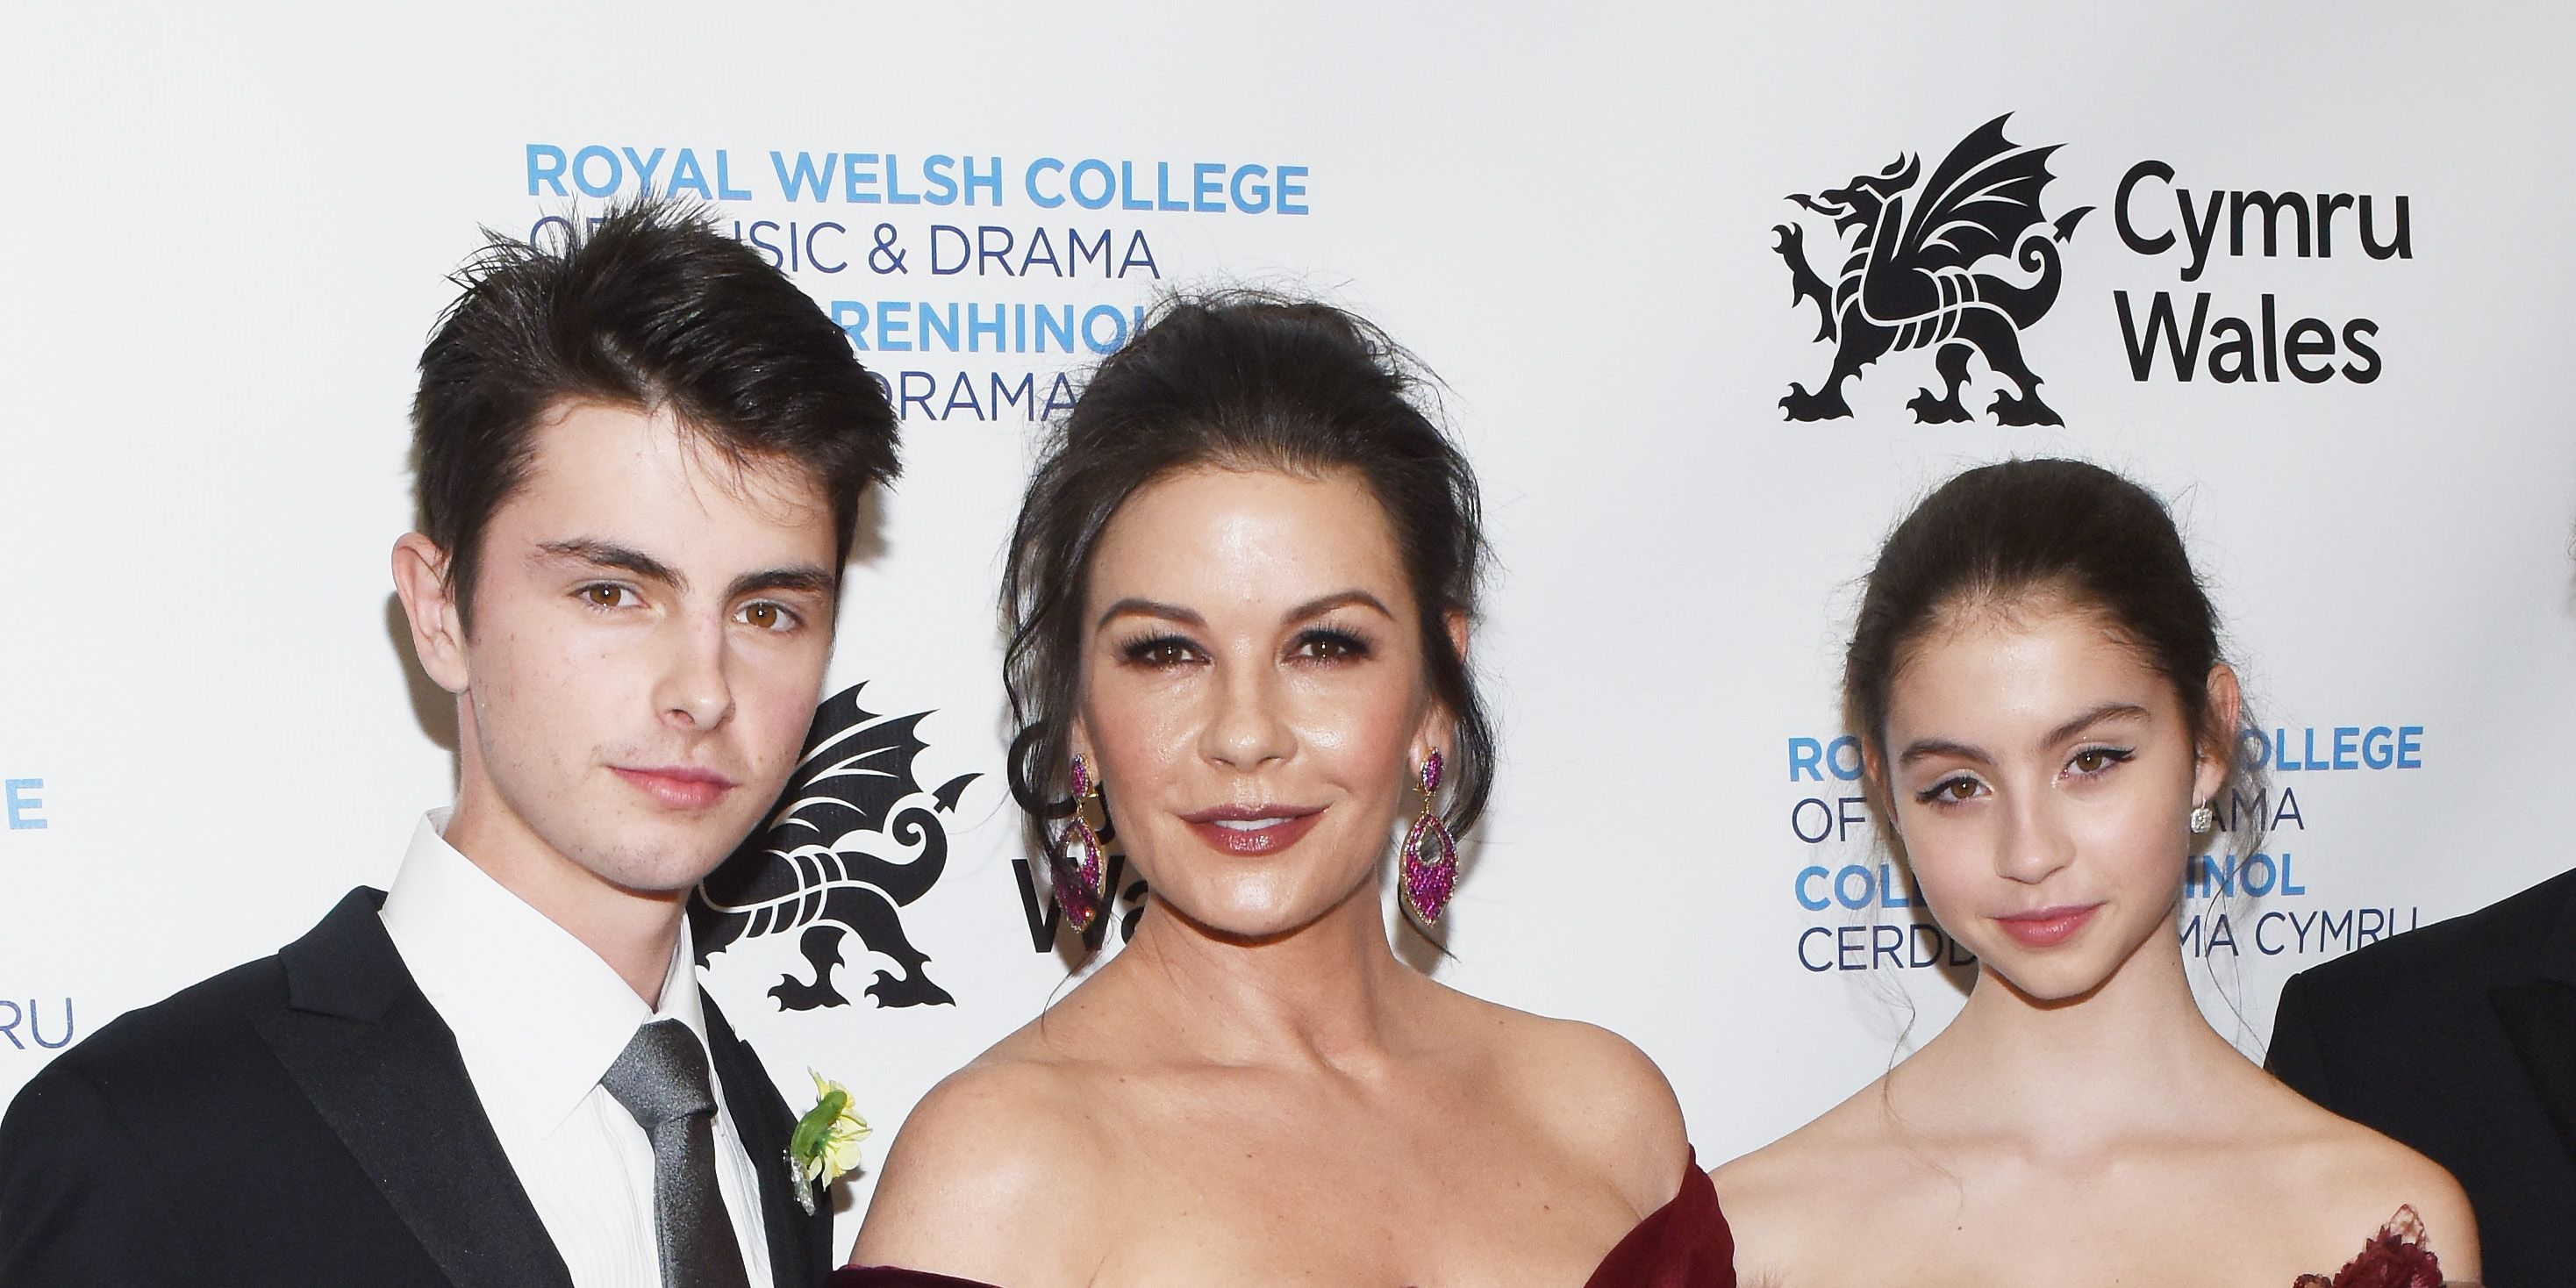 The Royal Welsh College of Music & Drama 2019 Gala